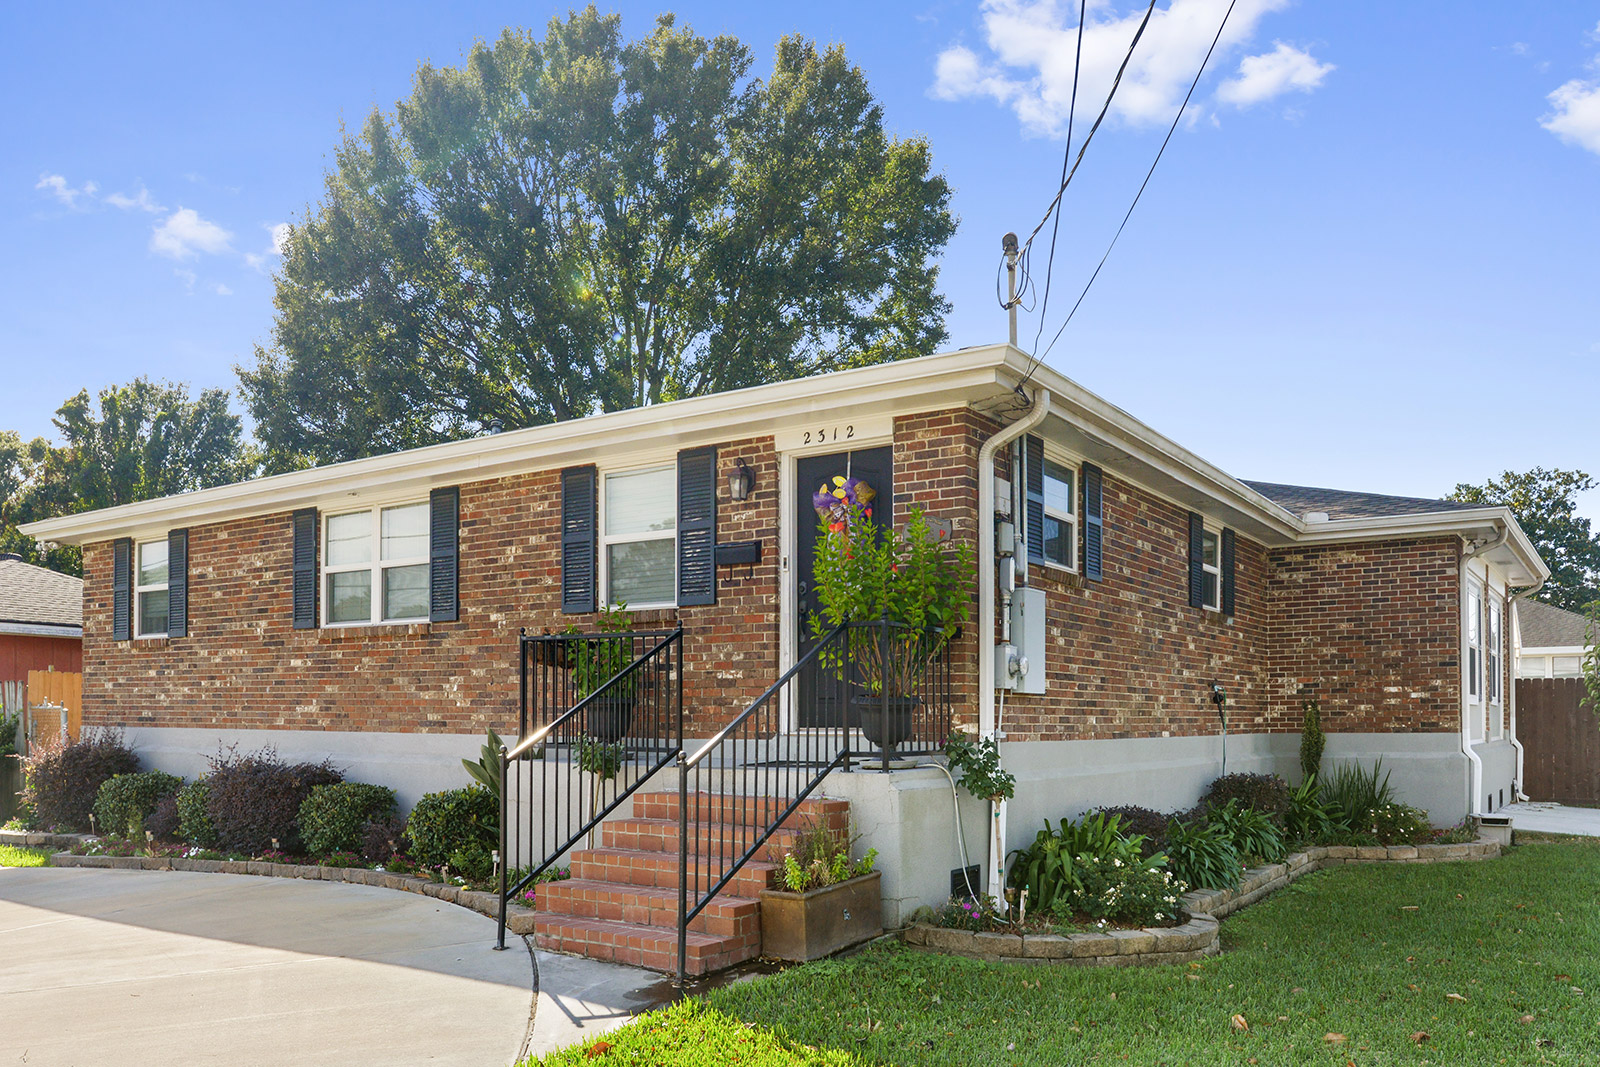 SOLD! - 2312 TAFT PARK METAIRIE, LA 70001